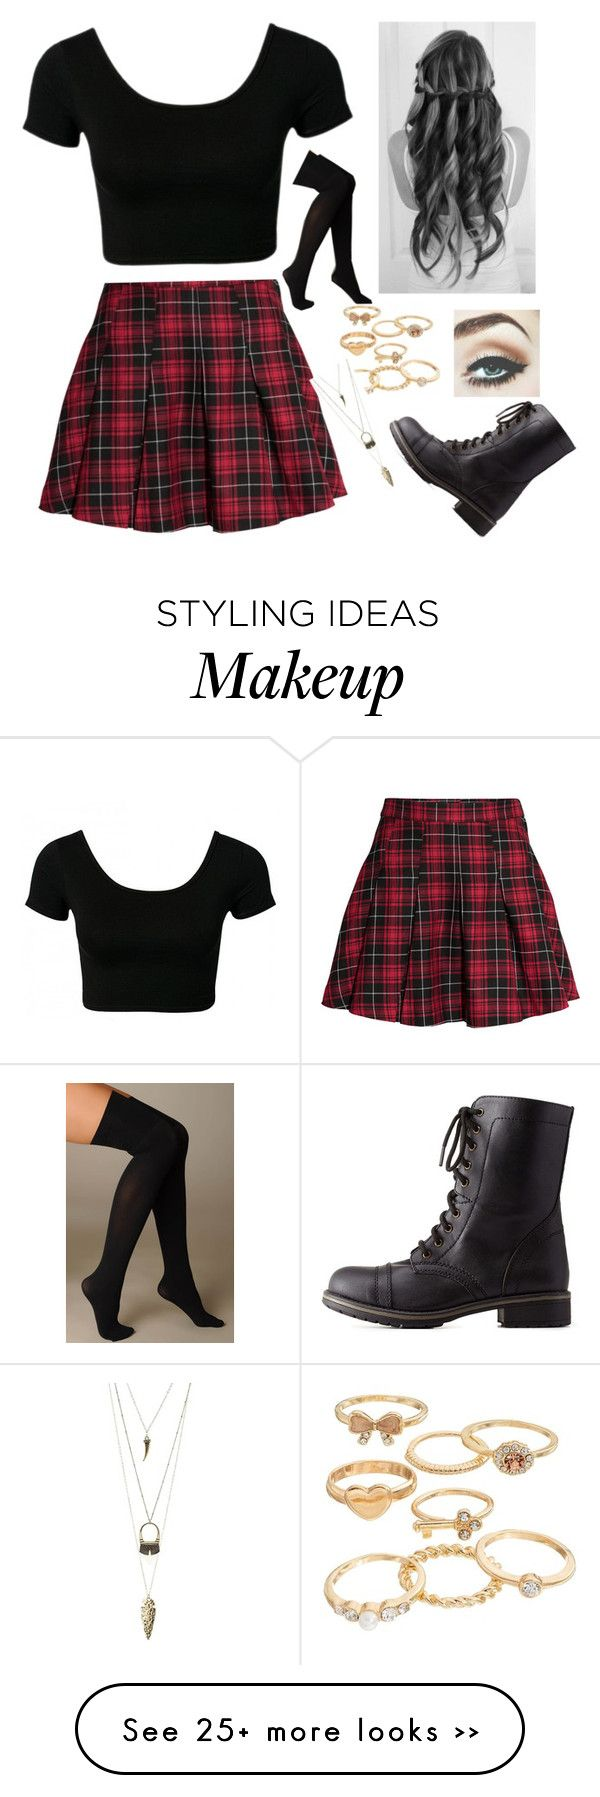 """""""Back to school"""" by bronycutie2 on Polyvore featuring H&M, Hue, Mudd and Charlotte Russe"""